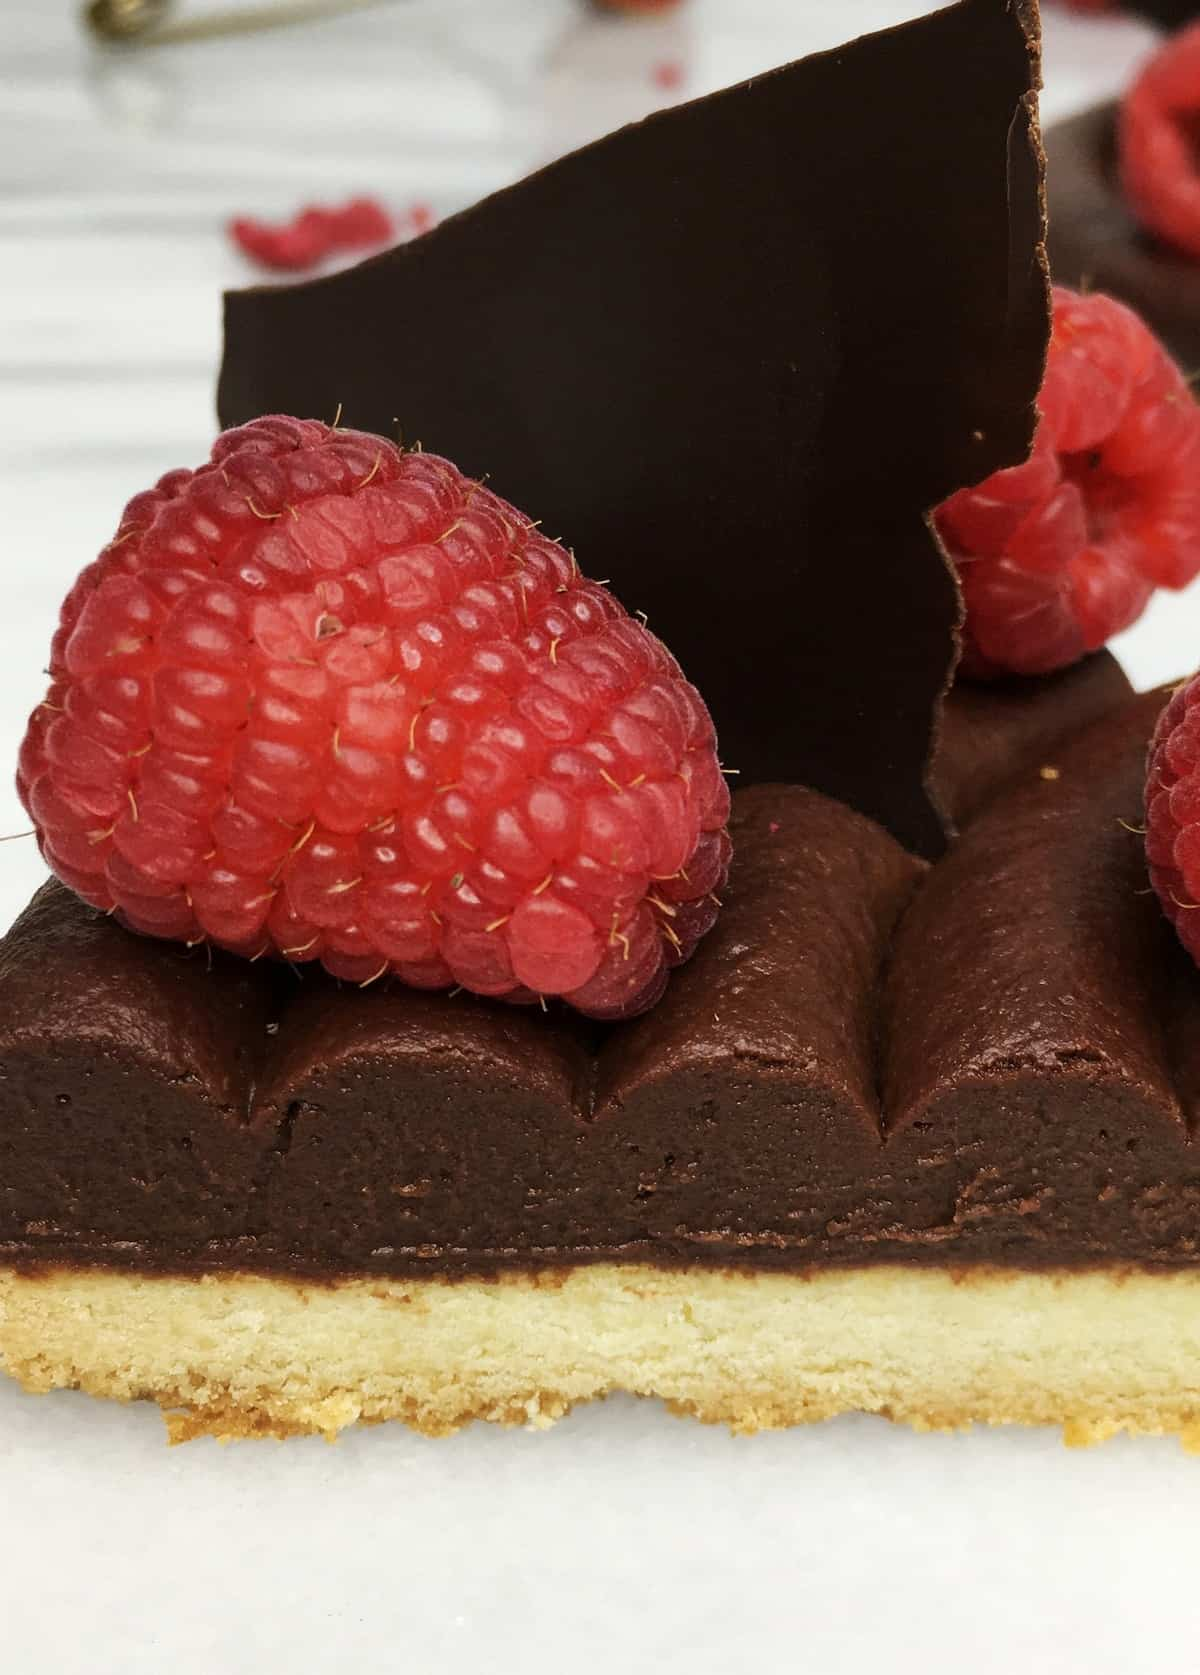 A single slice of the tart topped with chocolate ganache and fresh raspberries: Close up